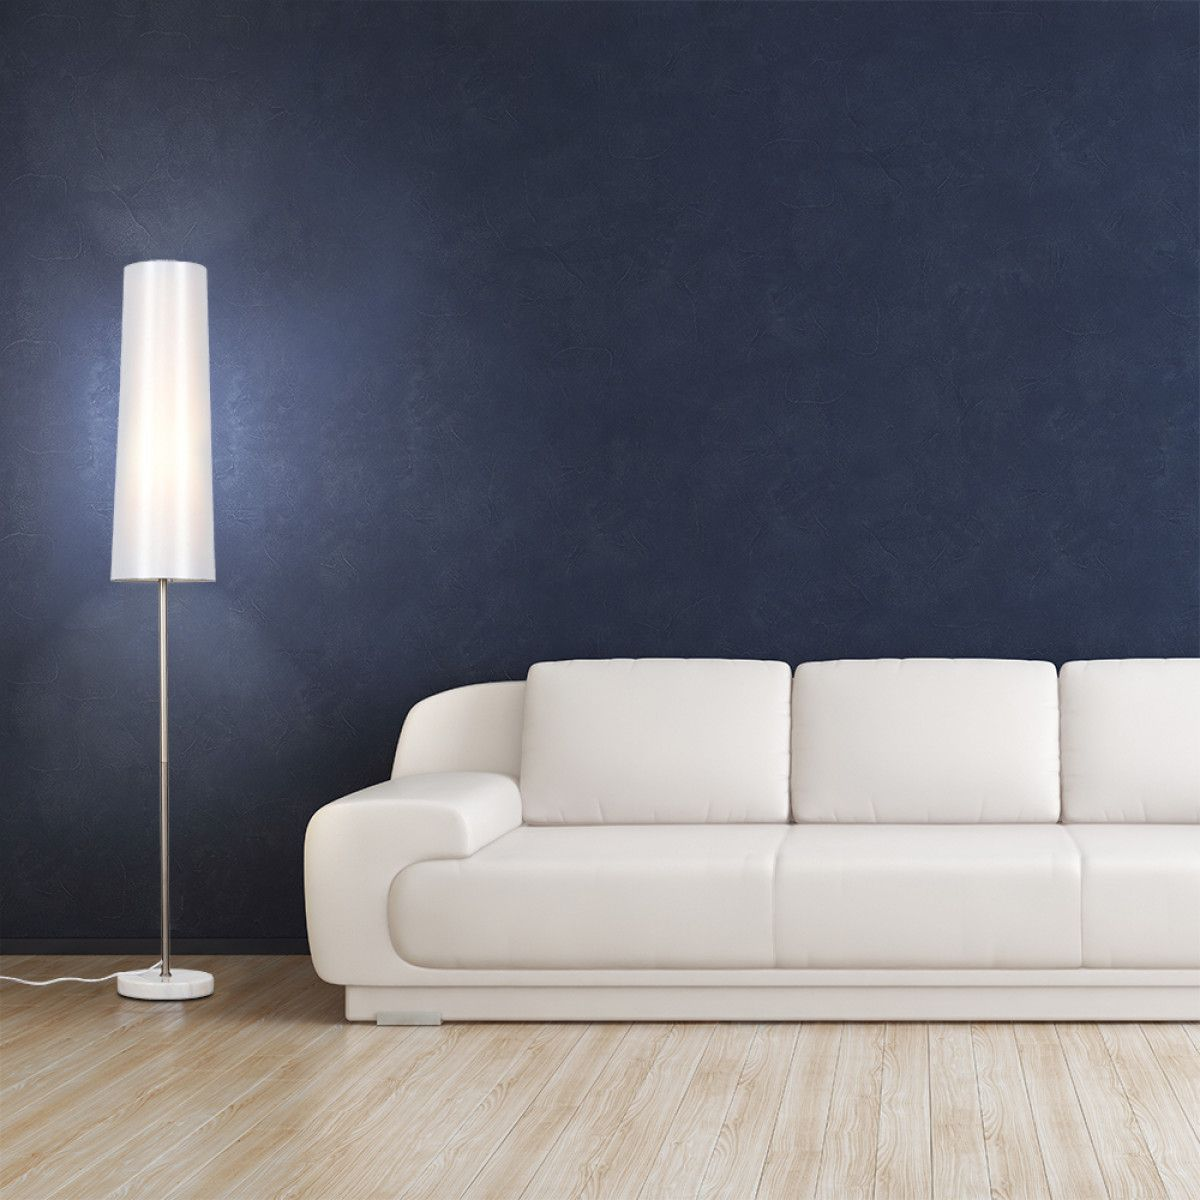 Orcollo White Marble Floor Lamp #whitemarbleflooring